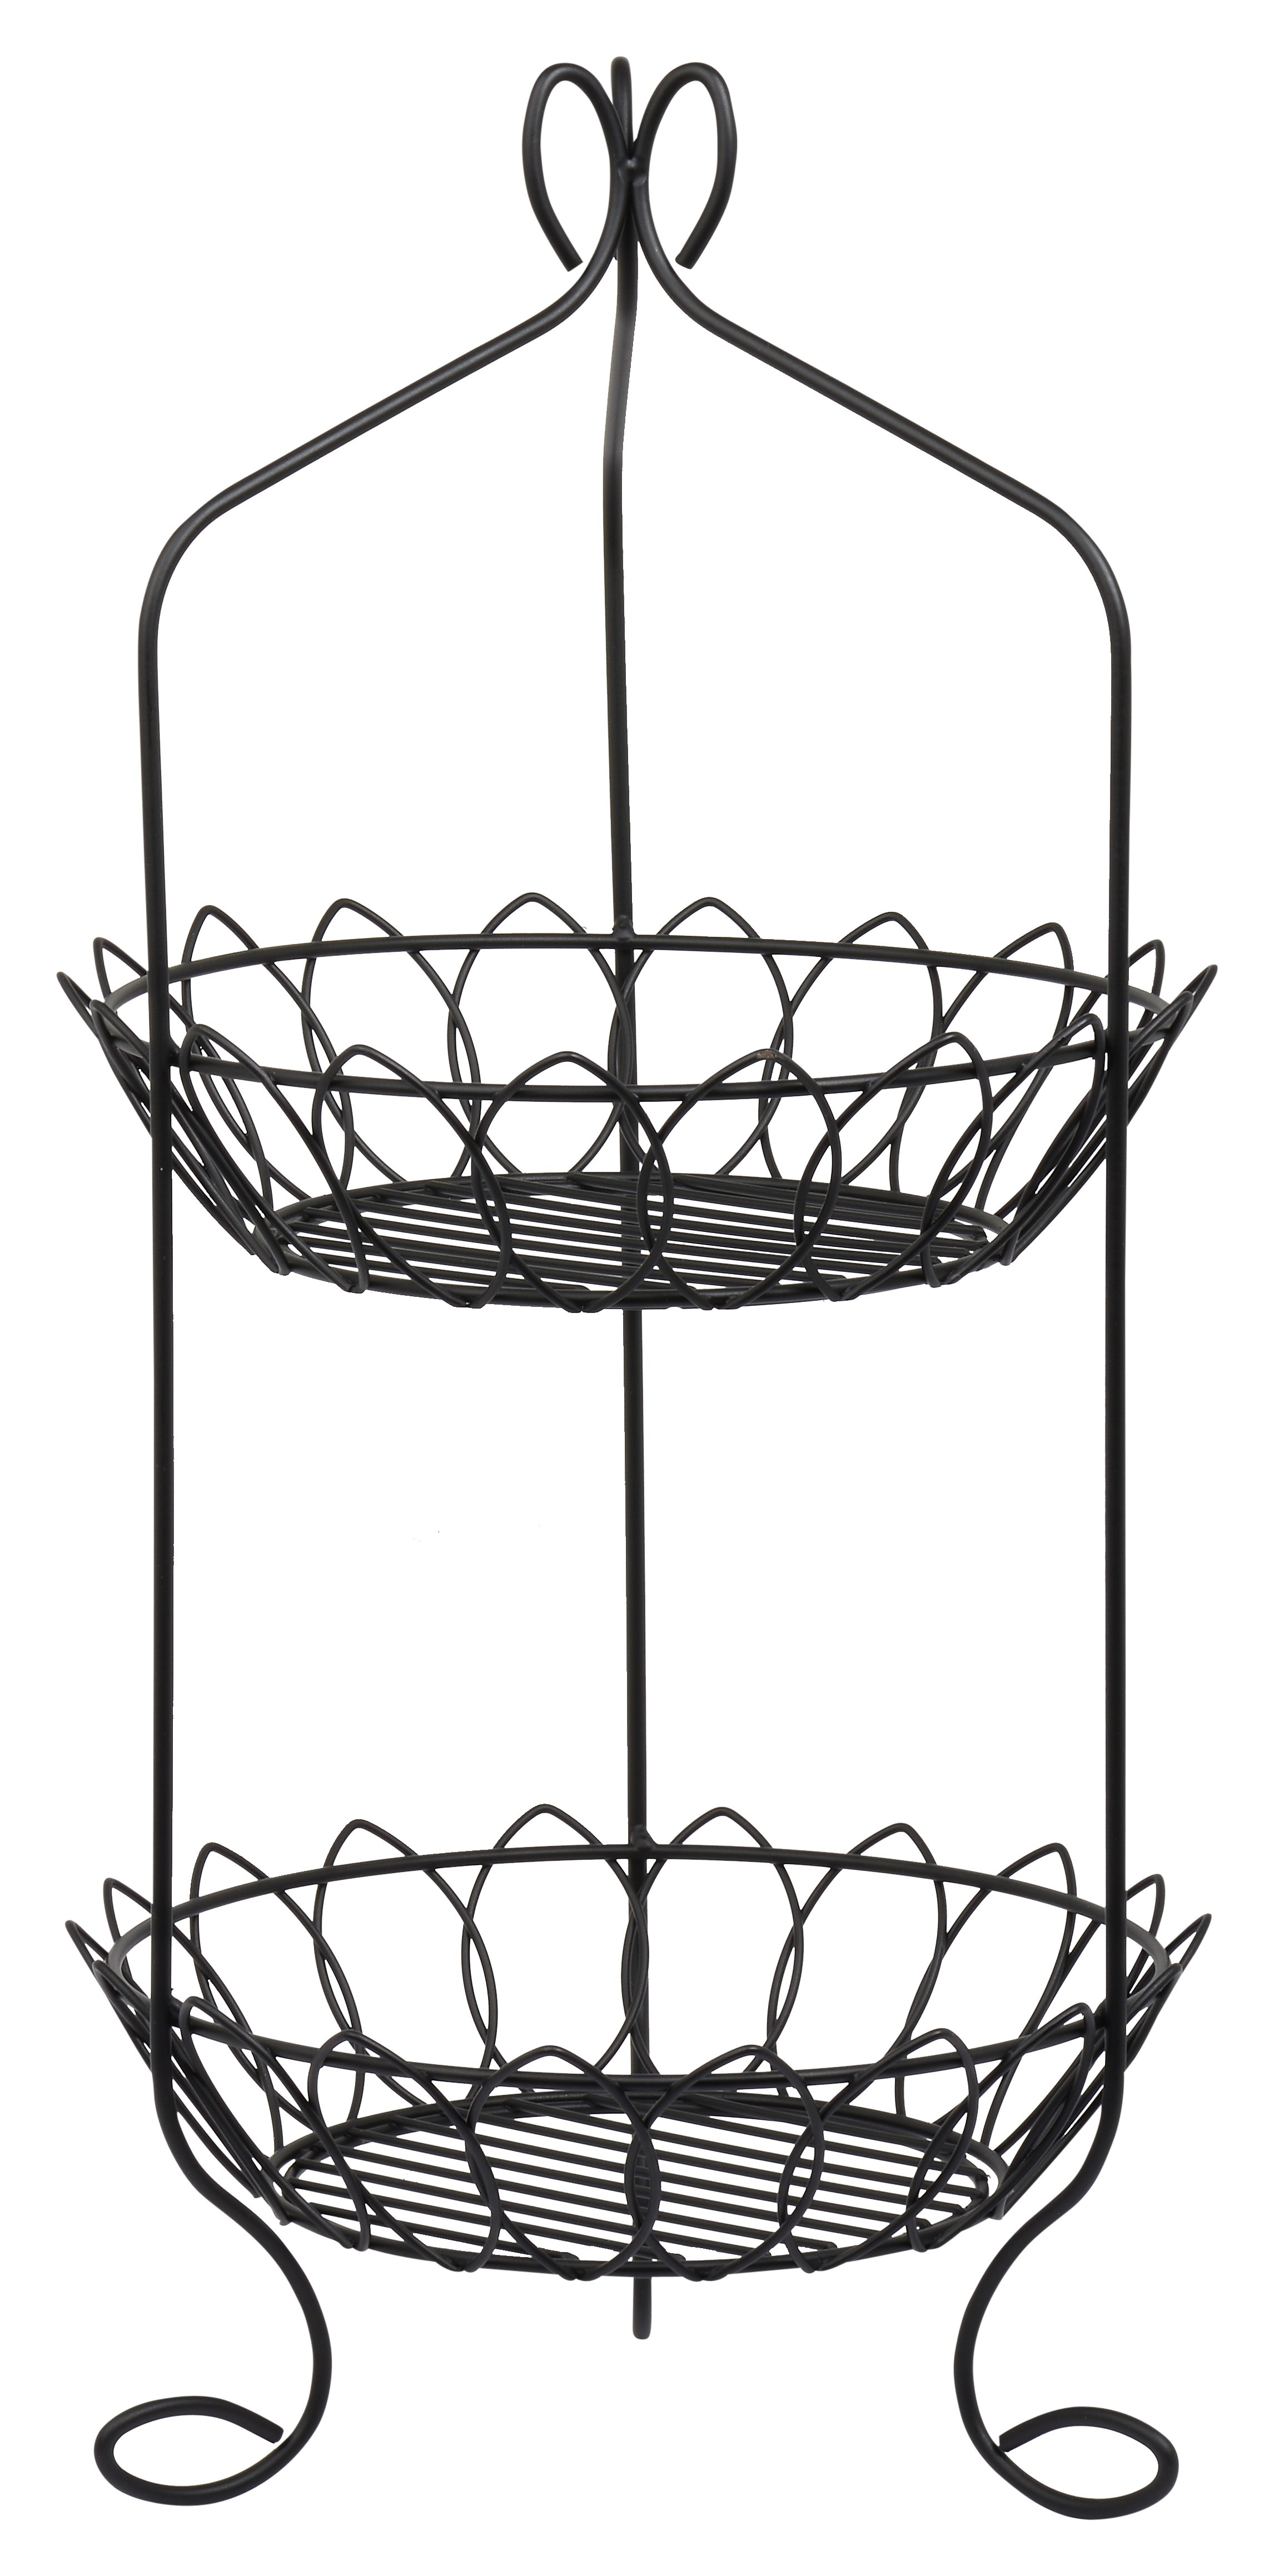 2 Tier Basket - High Quality Stainless Steel with Black Powder Coating